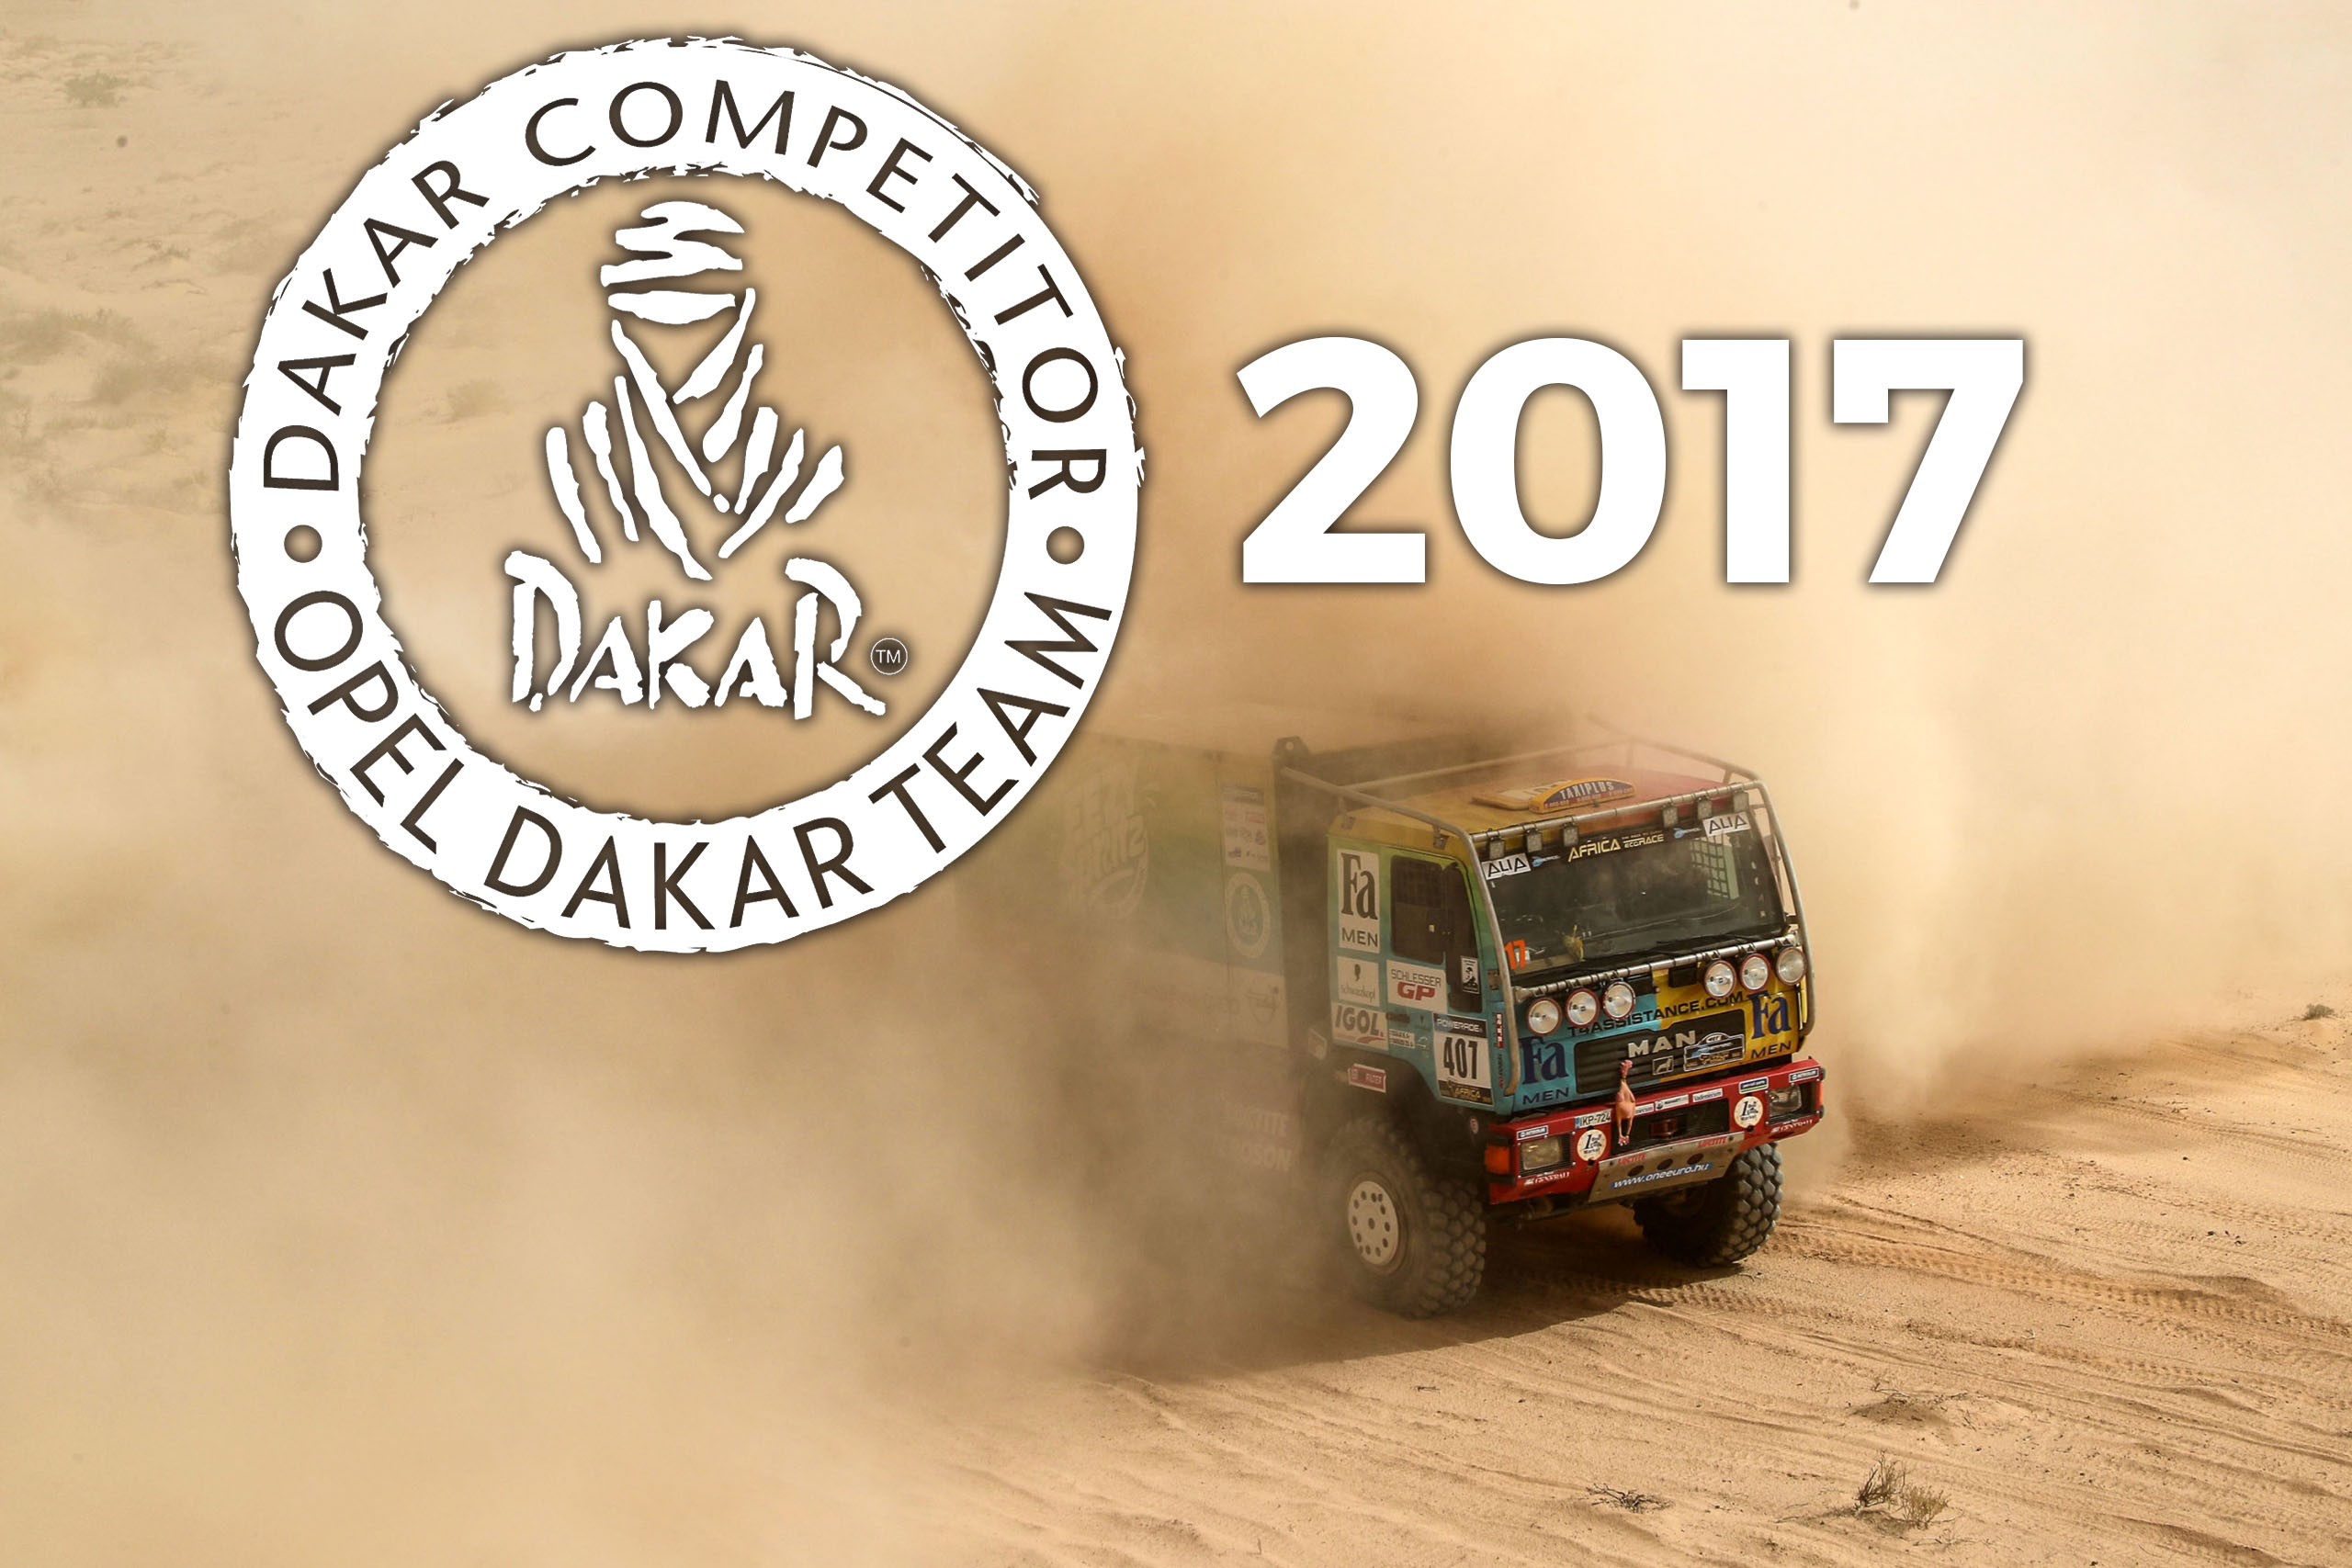 Opel Dakar Team 2017